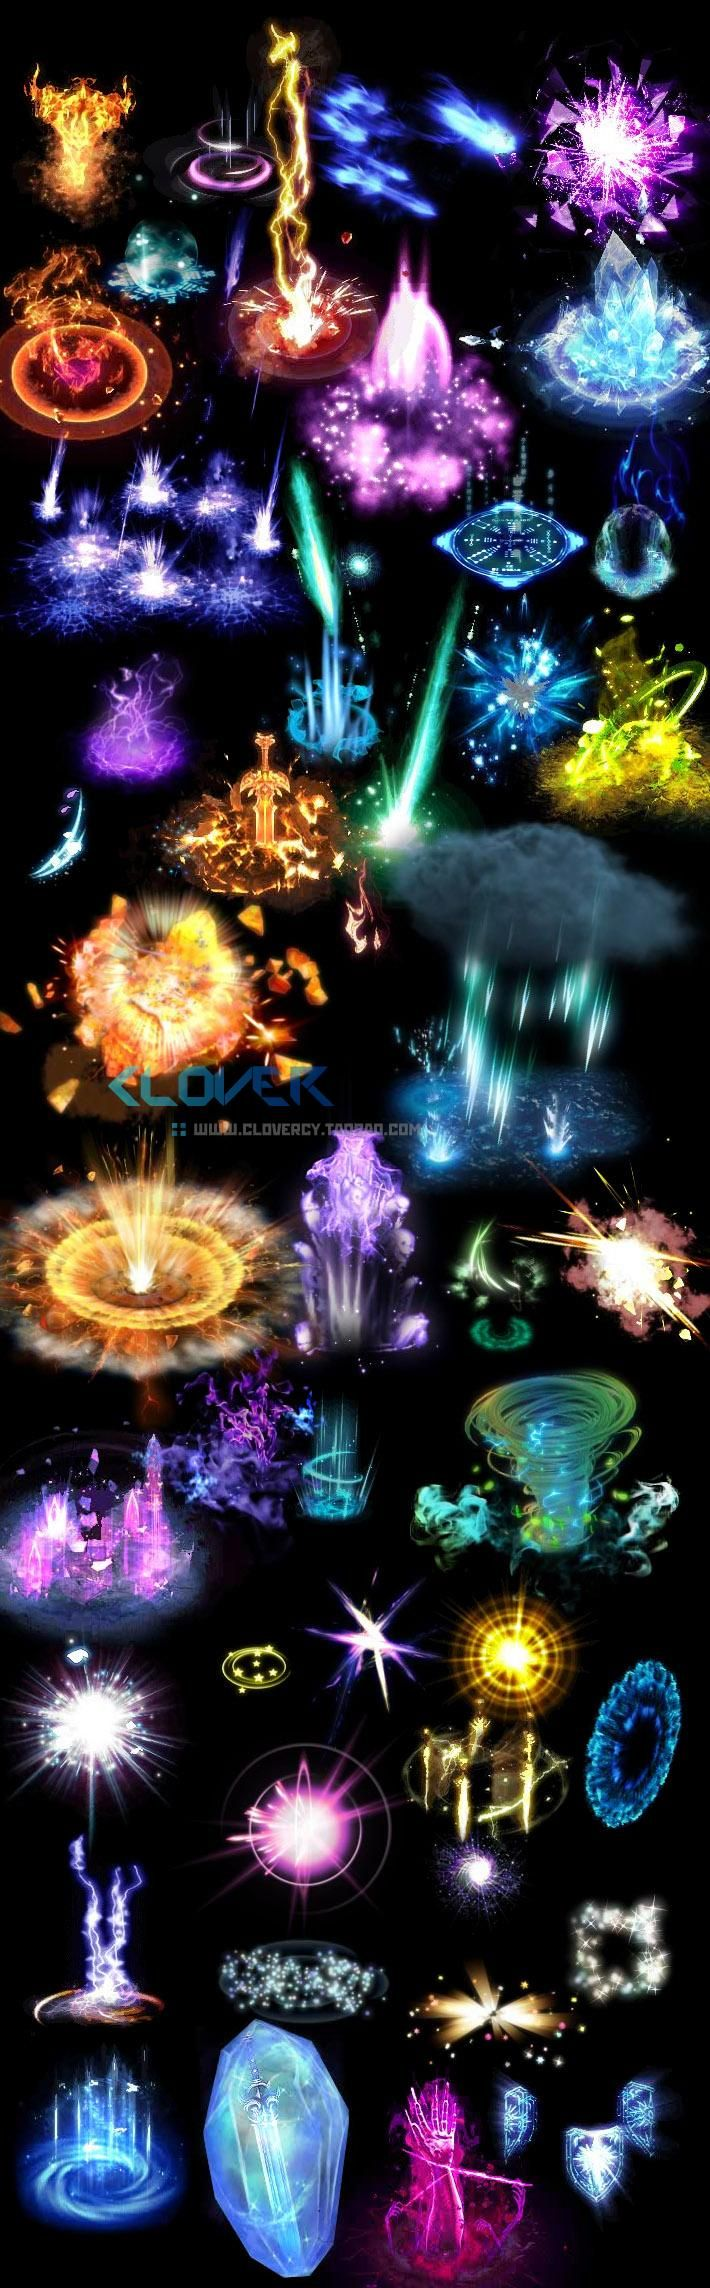 Game art design material resources of special effects magic skills luminous efficiency even PNG frame animation sequence set (5 Taobao